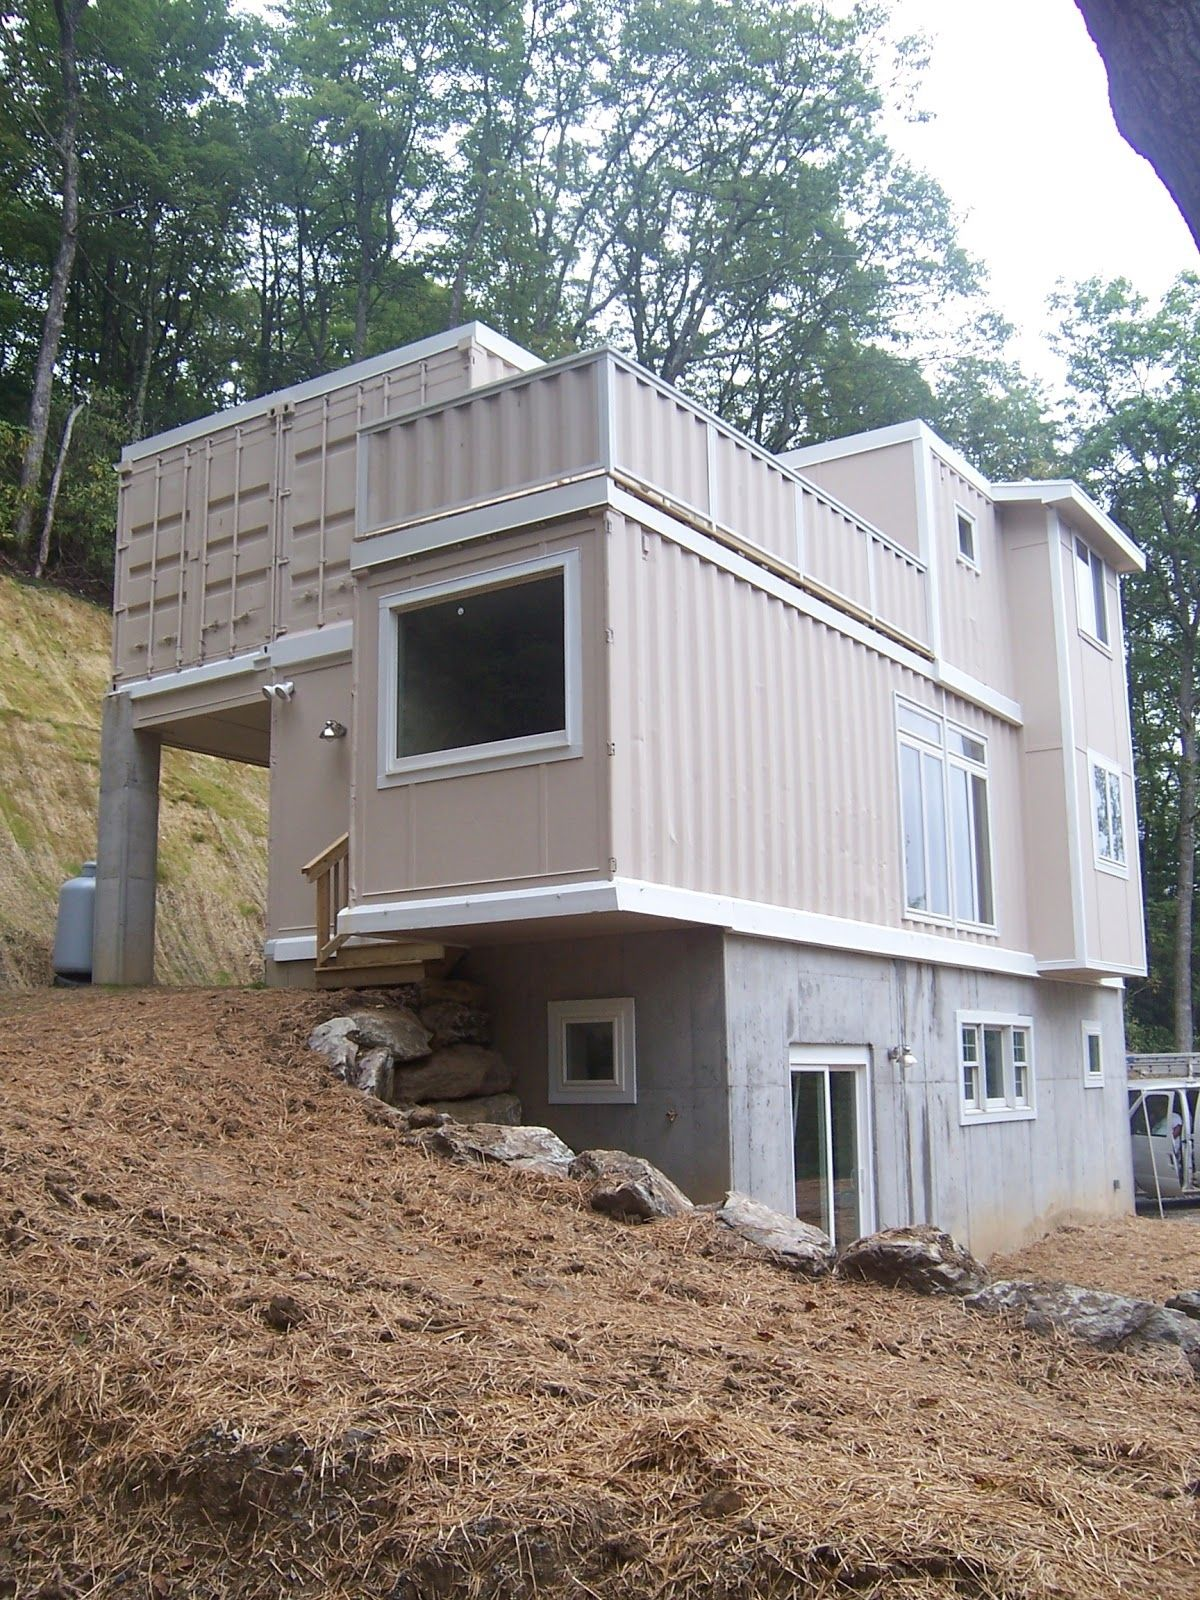 Modern Shipping Container Homes In Shipping Container Home Design     Modern Shipping Container Homes In Shipping Container Home Design Software  Artistic Shipping